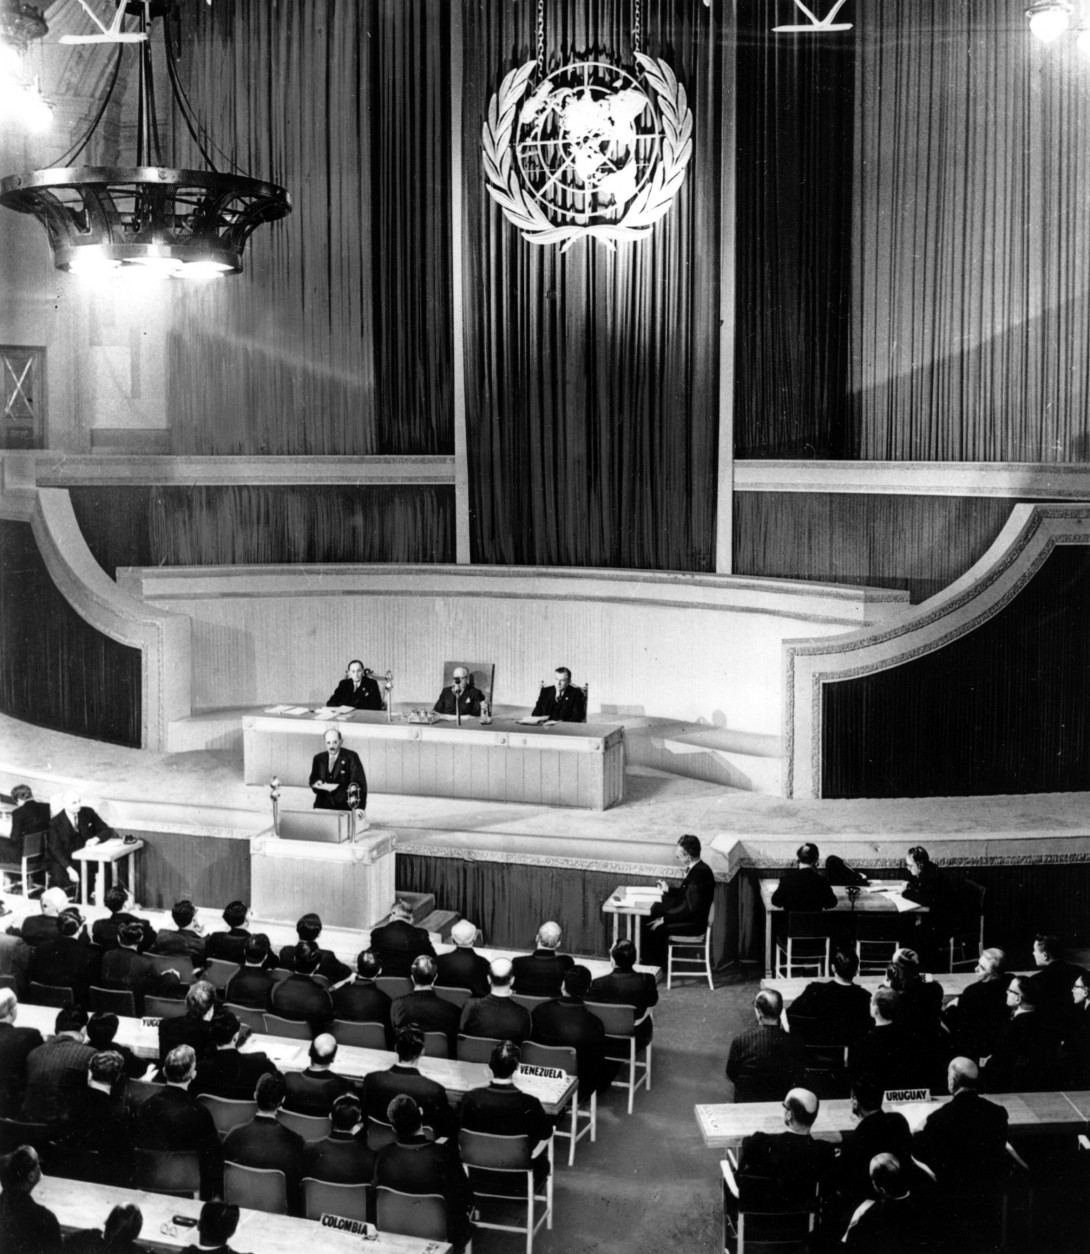 This is a general view of the first session of the United Nations Organization's General Assembly at Central Hall on Parliament Square in London, England, on January 10, 1946.  In his opening session address British Prime Minister Clement R. Attlee, on speaker's platform, warned that another war would destroy mankind. In the background is the U.N. emblem, the world surrounded by olive wreaths.  (AP Photo)